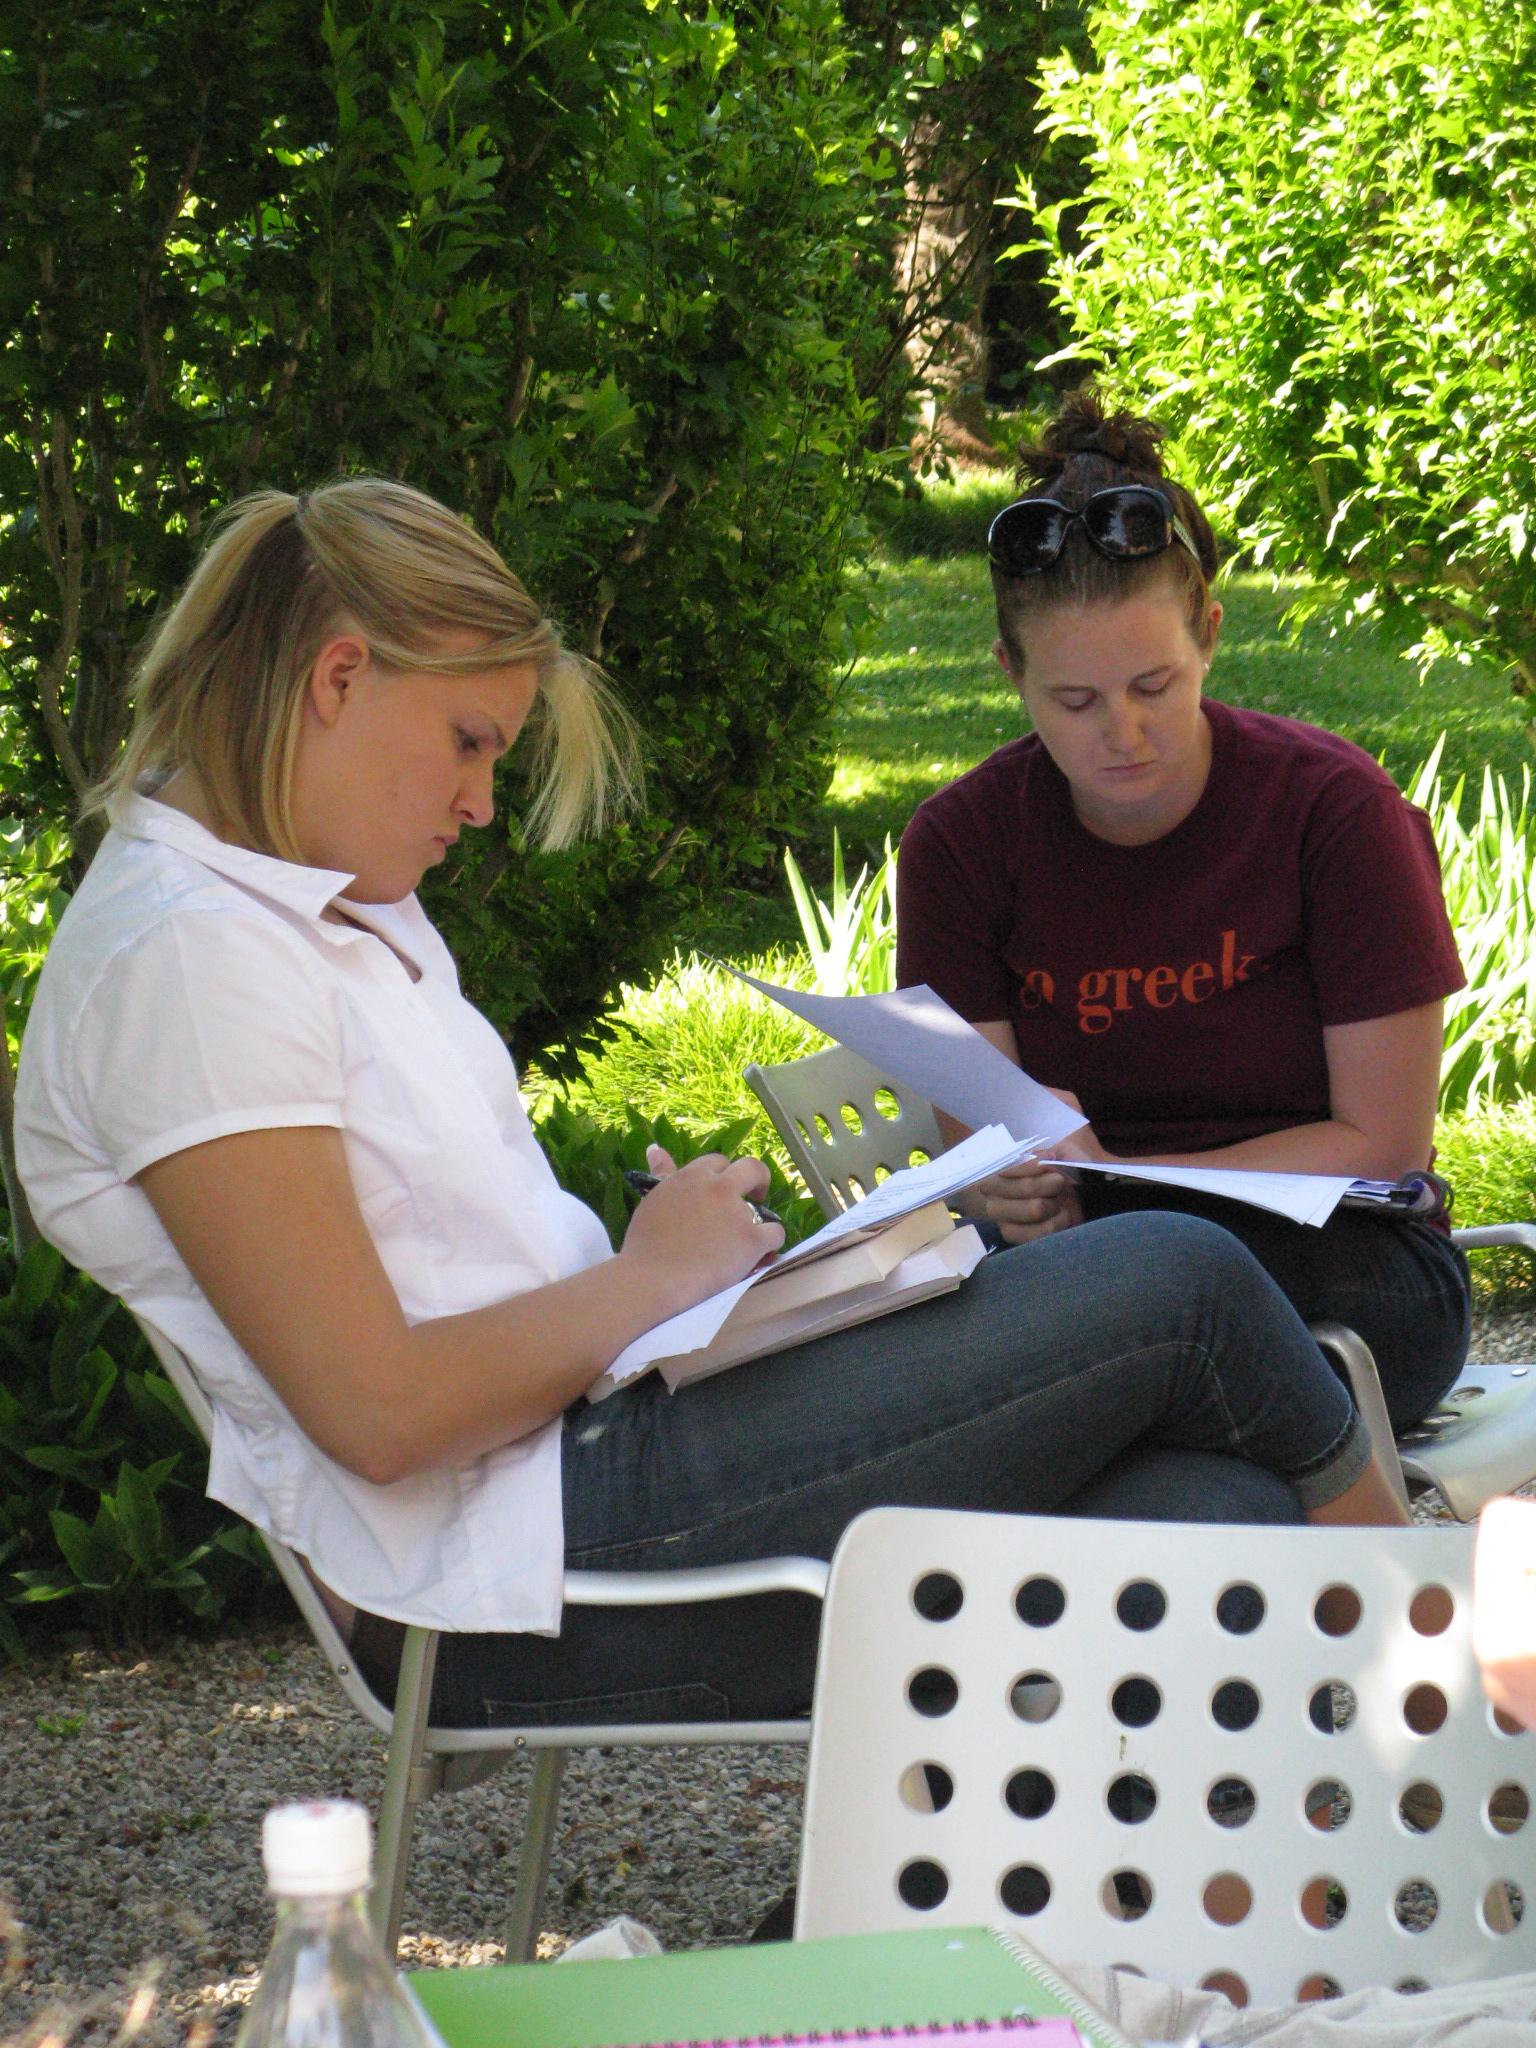 Junior communications major Allison Postlethwait (left), an Honors student from Northborough, Mass., and senior communications major Amber Finlay, a senior from Lincoln, Va., work on articles for Maderni in the garden outside of Villa Maderni.